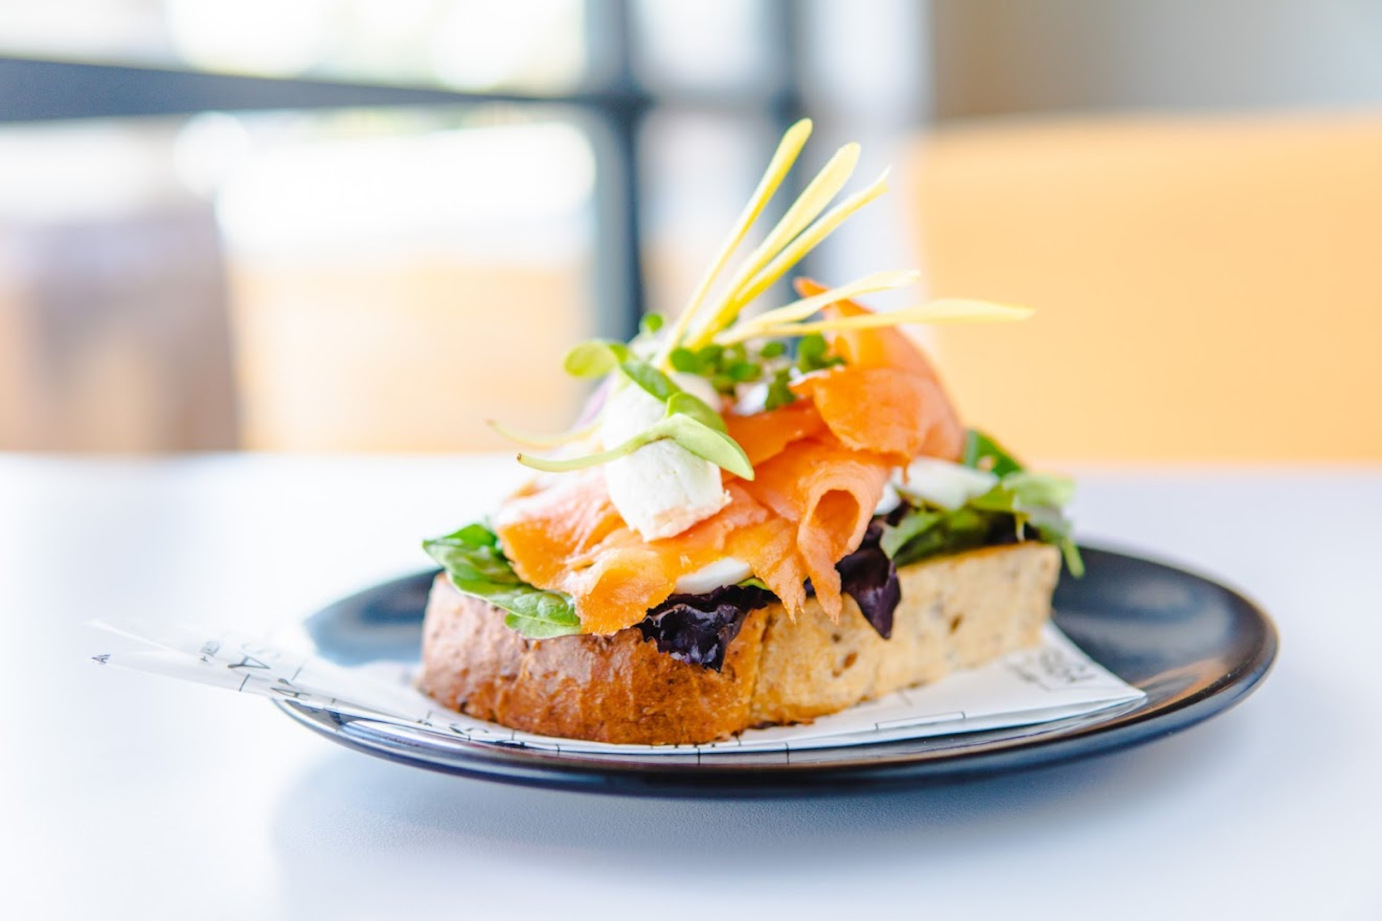 Slice of bread with veggies and salmon